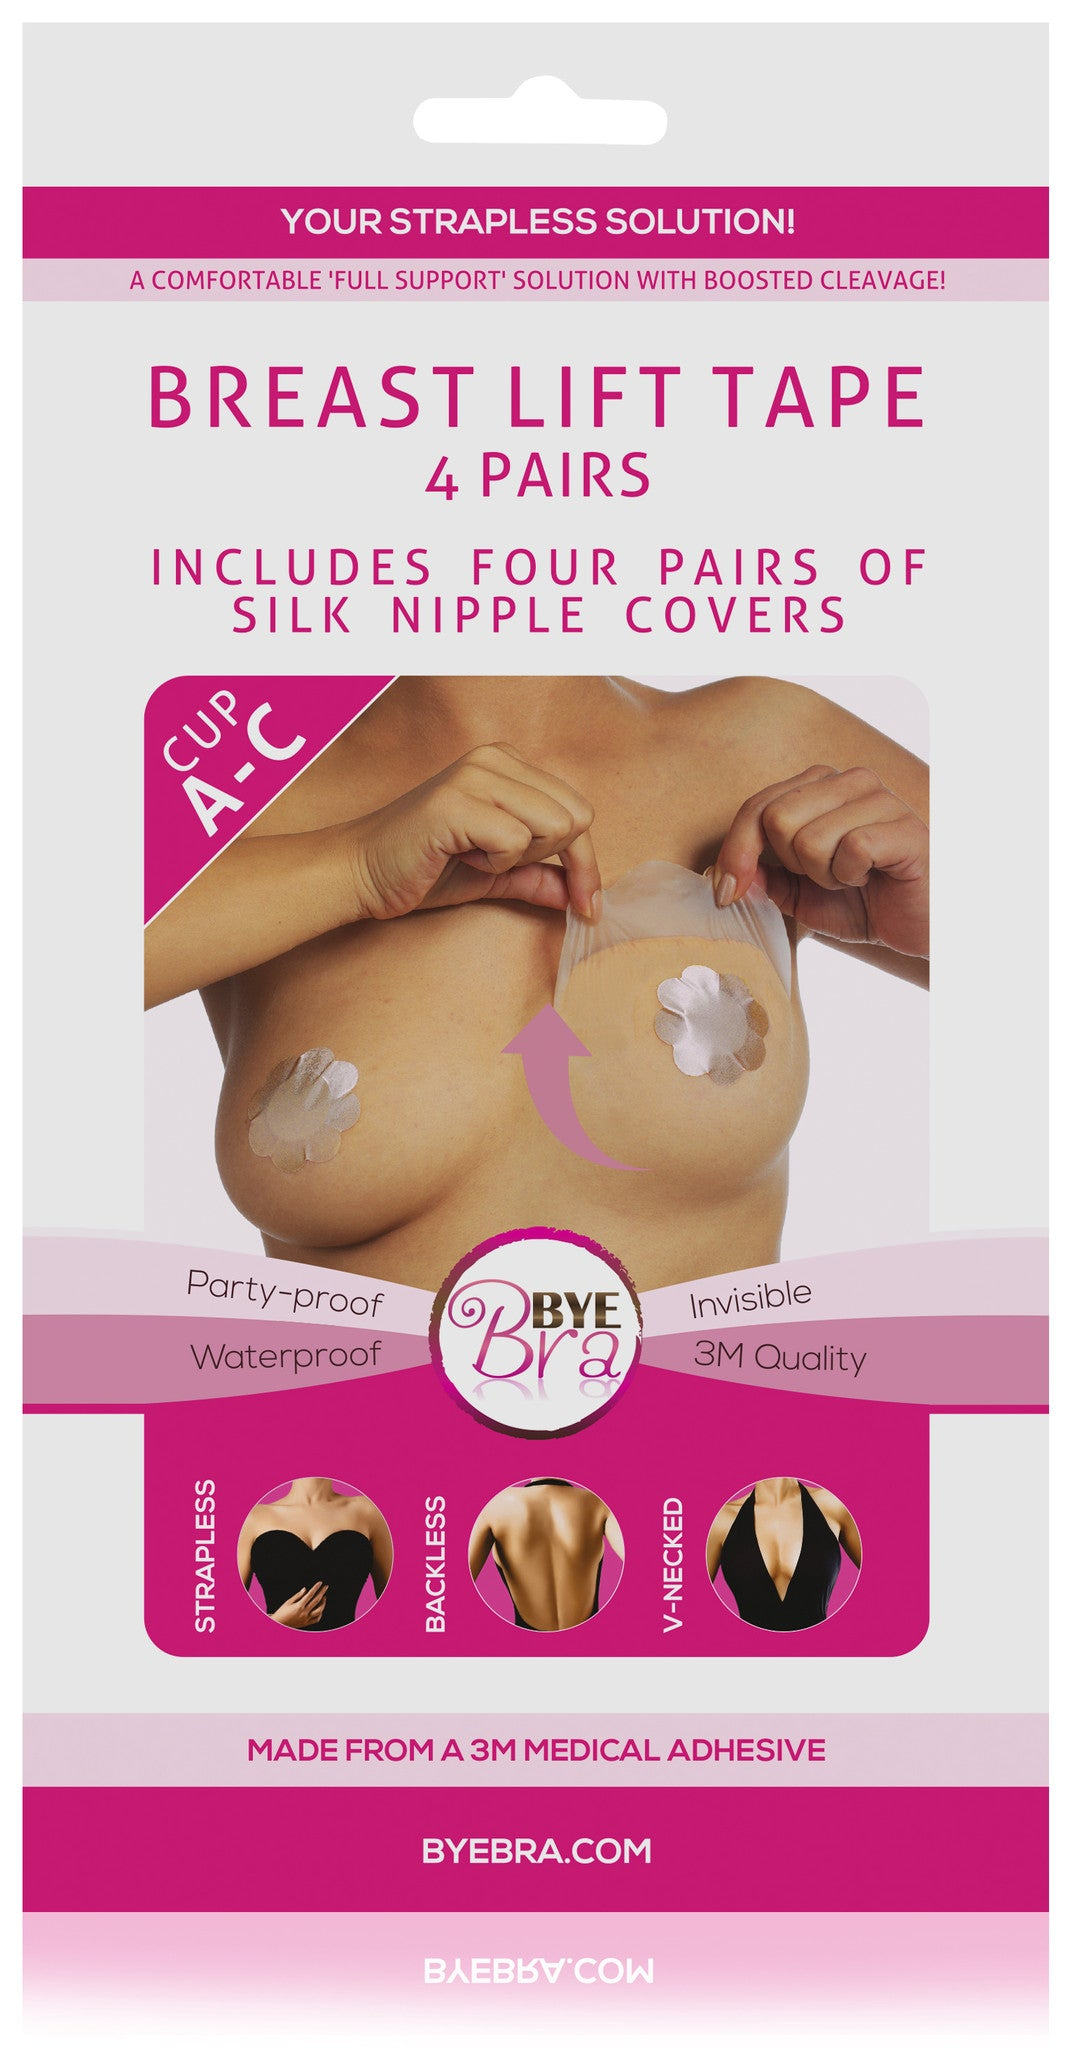 Medical 3M Tape by Henkel, Breast lift Tape Cup A-C with Silk Nipple Covers By Bye Bra Holland